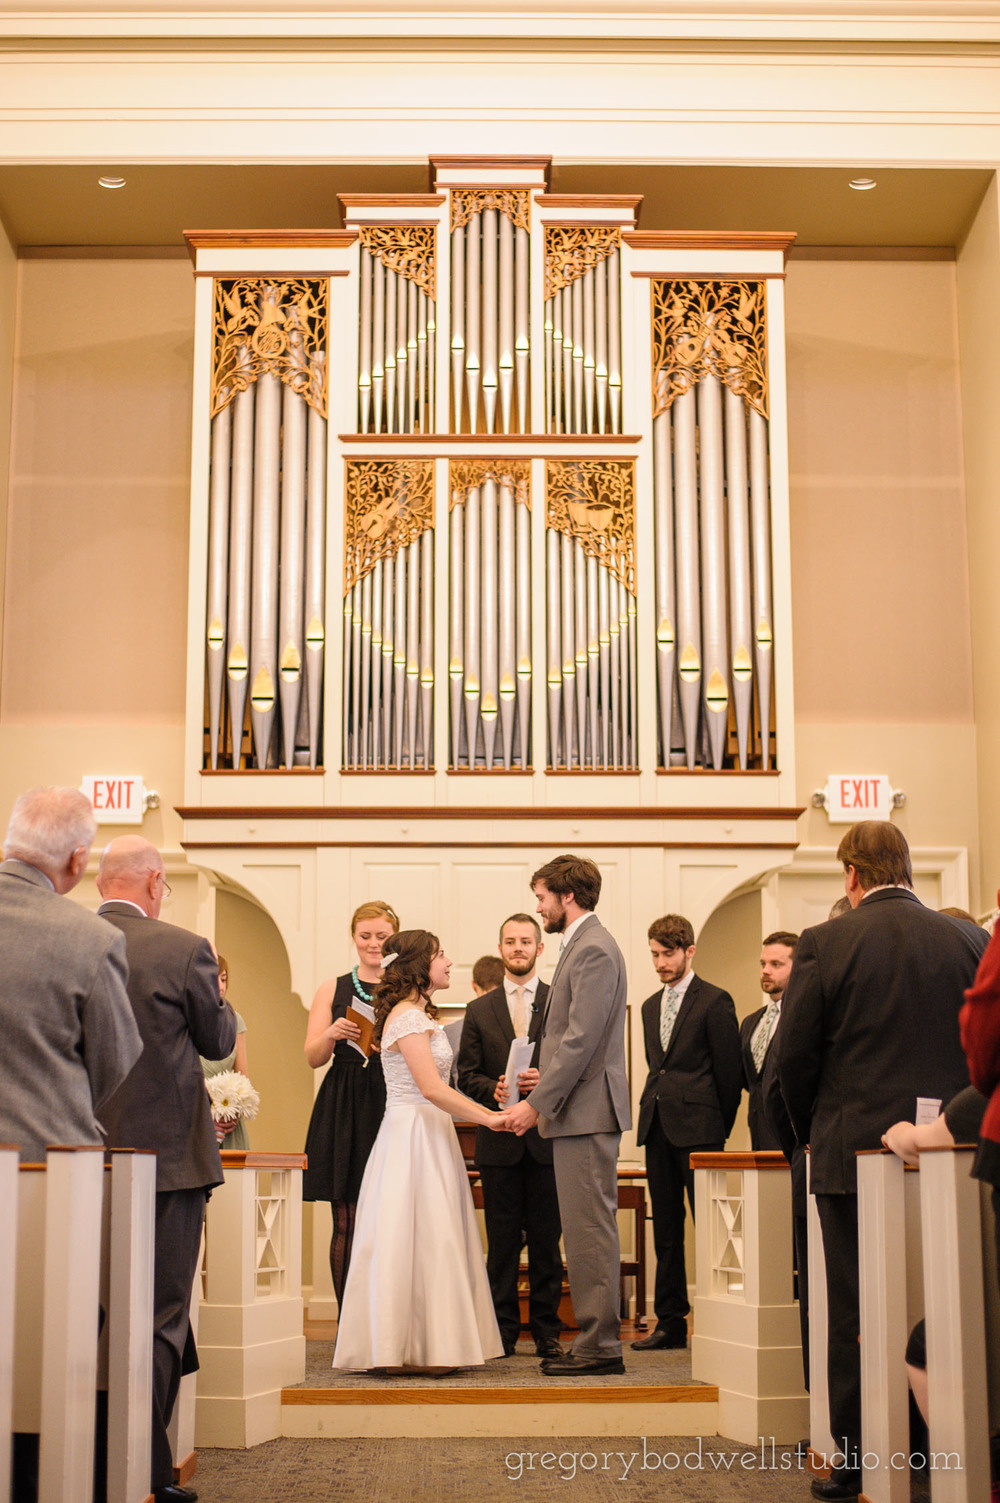 Bumpus_Wedding_015.jpg